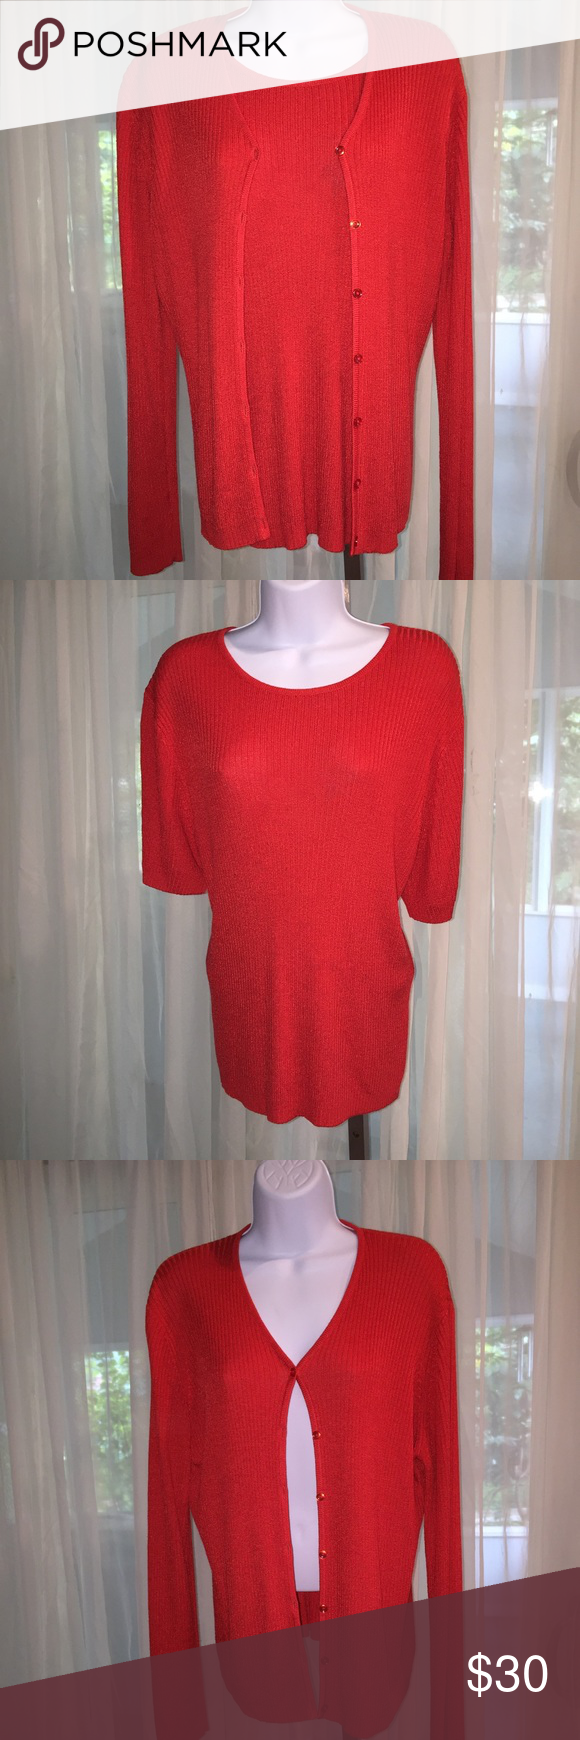 269.2. a beautiful red sweater set | Red sweaters